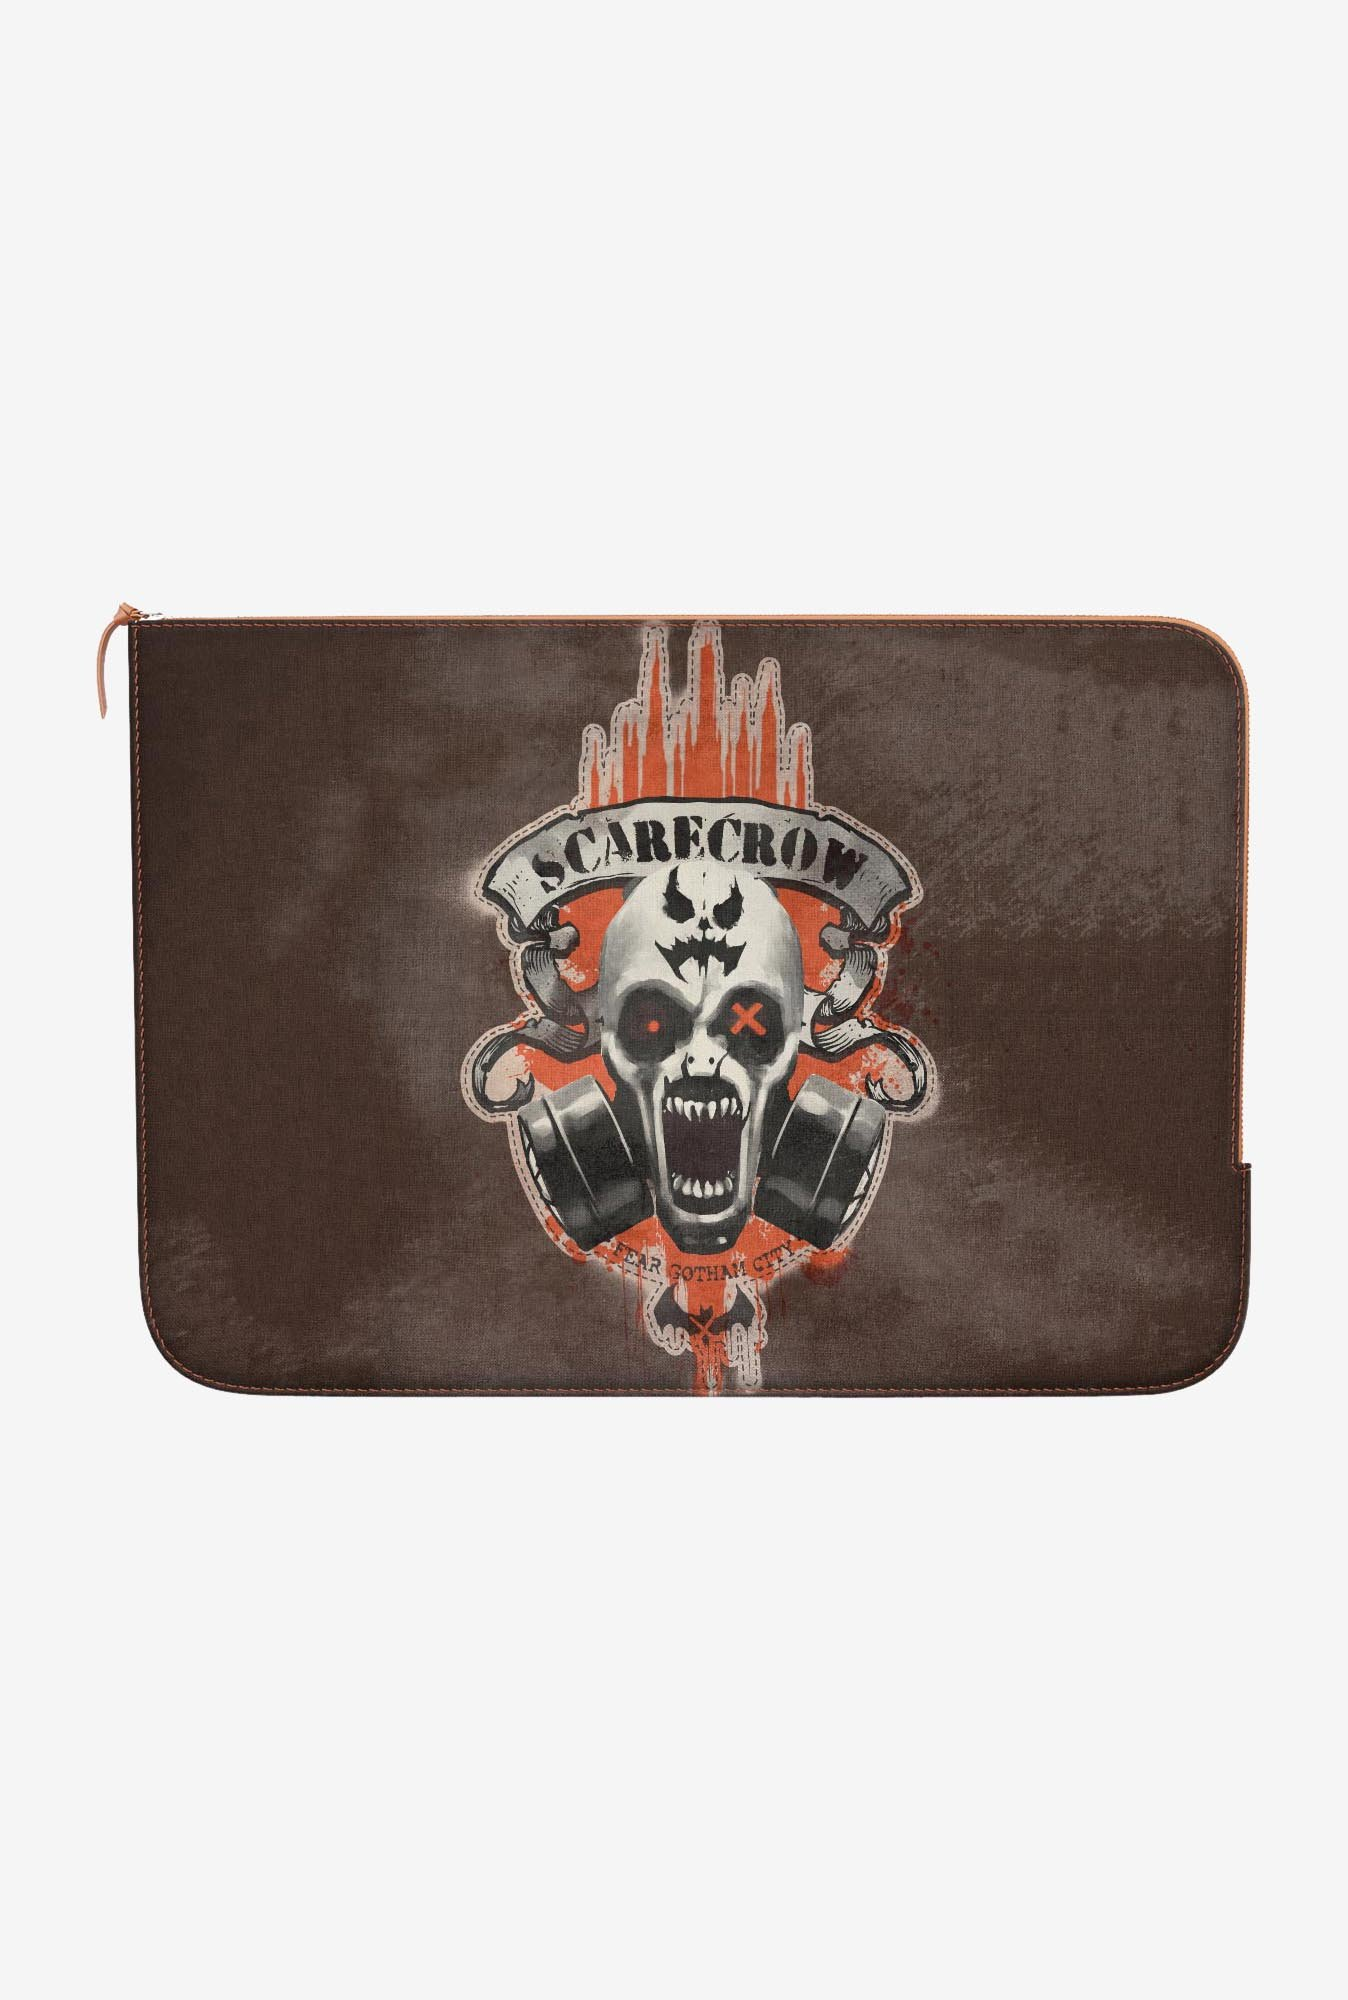 DailyObjects Bat Scarecrow MacBook Air 13 Zippered Sleeve